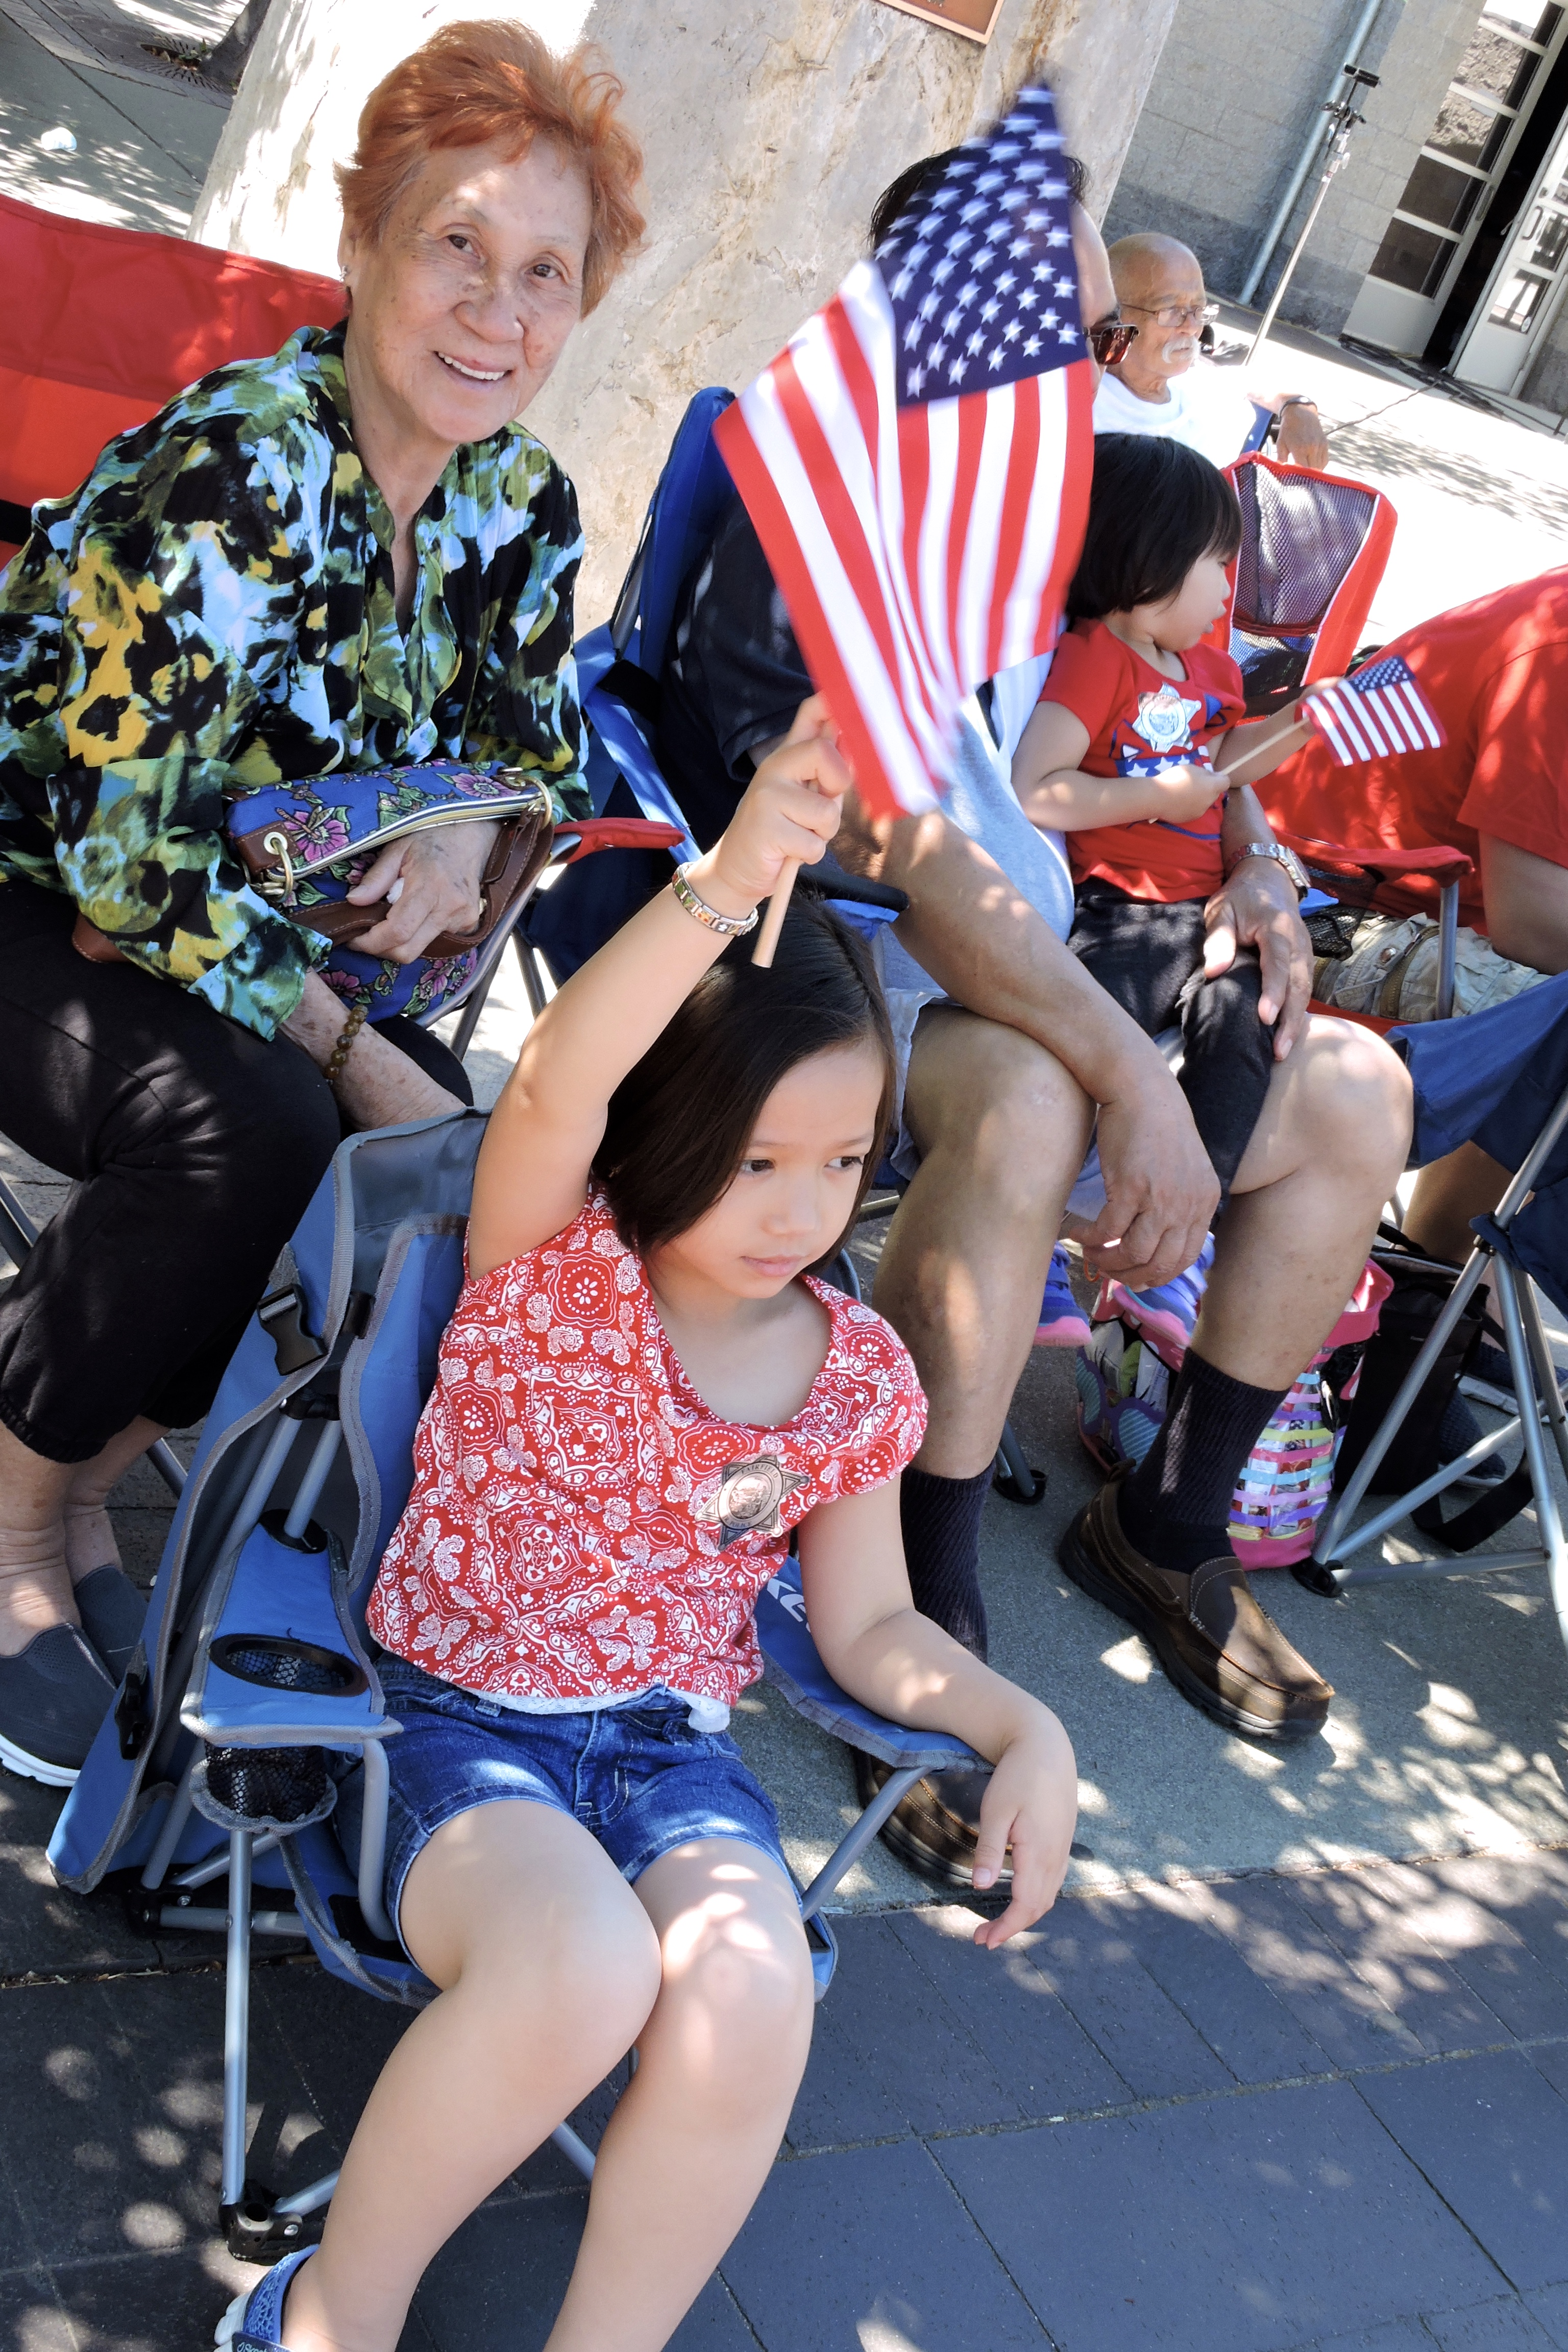 f9d16c28125b Celebrate Independence Day in Fairfield - Visit Fairfield Blog